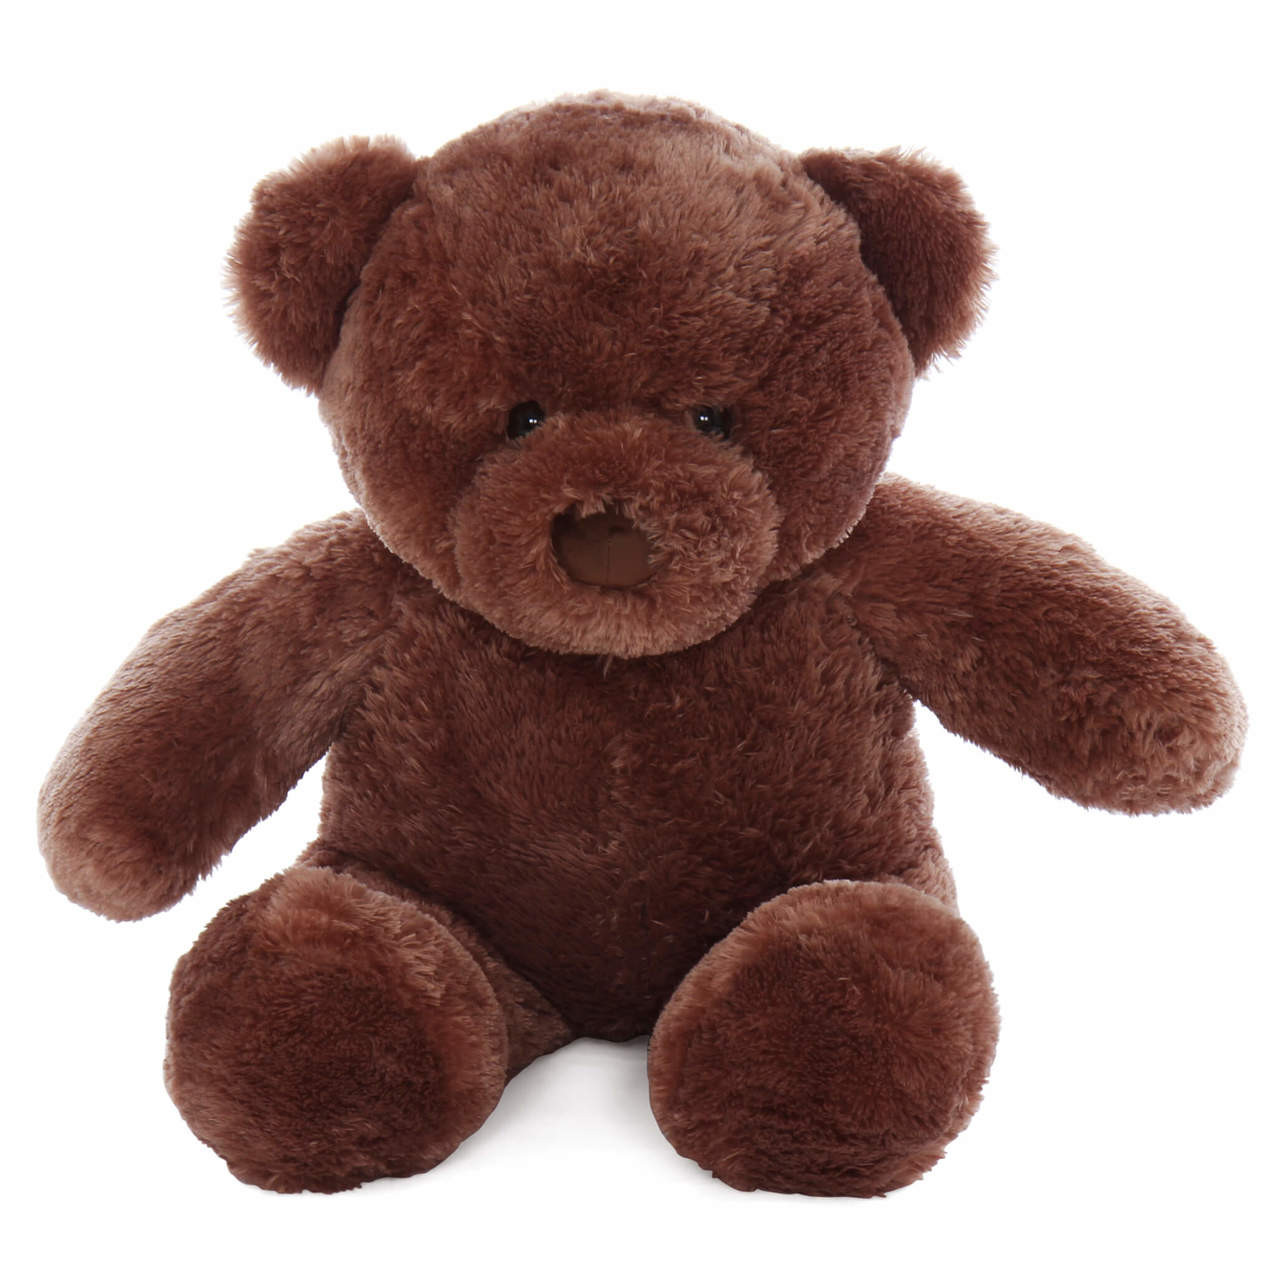 Enormously Big 2 ½ft Teddy Bear Mocha Brown Big Chubs